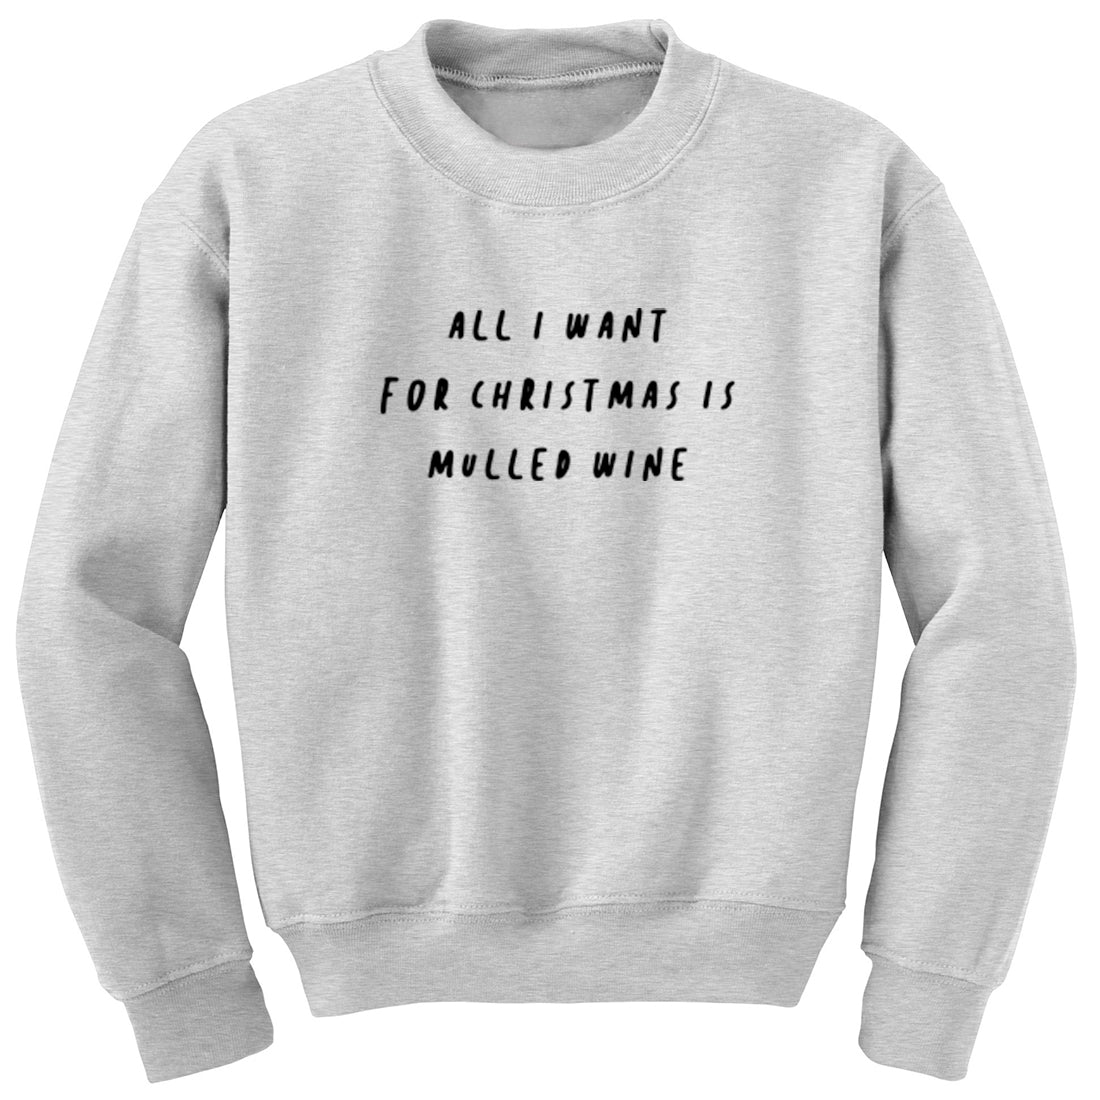 All I Want For Christmas Is Mulled Wine Unisex Jumper K2475 - Illustrated Identity Ltd.